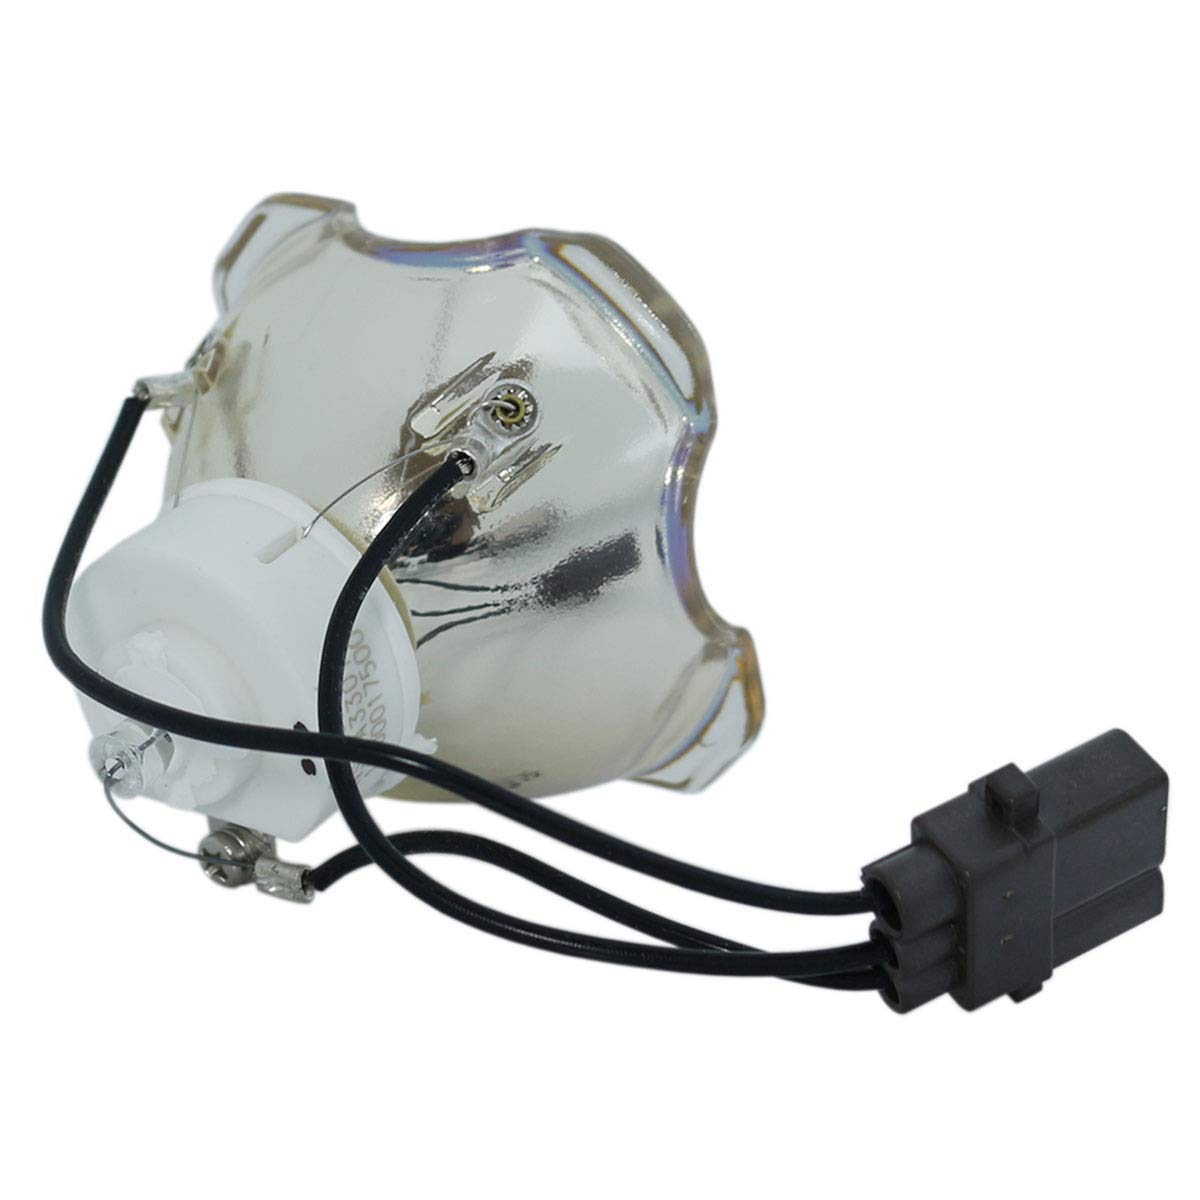 XpertMall Replacement Lamp and Housing with Original Ushio Bulb Inside for DLA-VS2200ZG